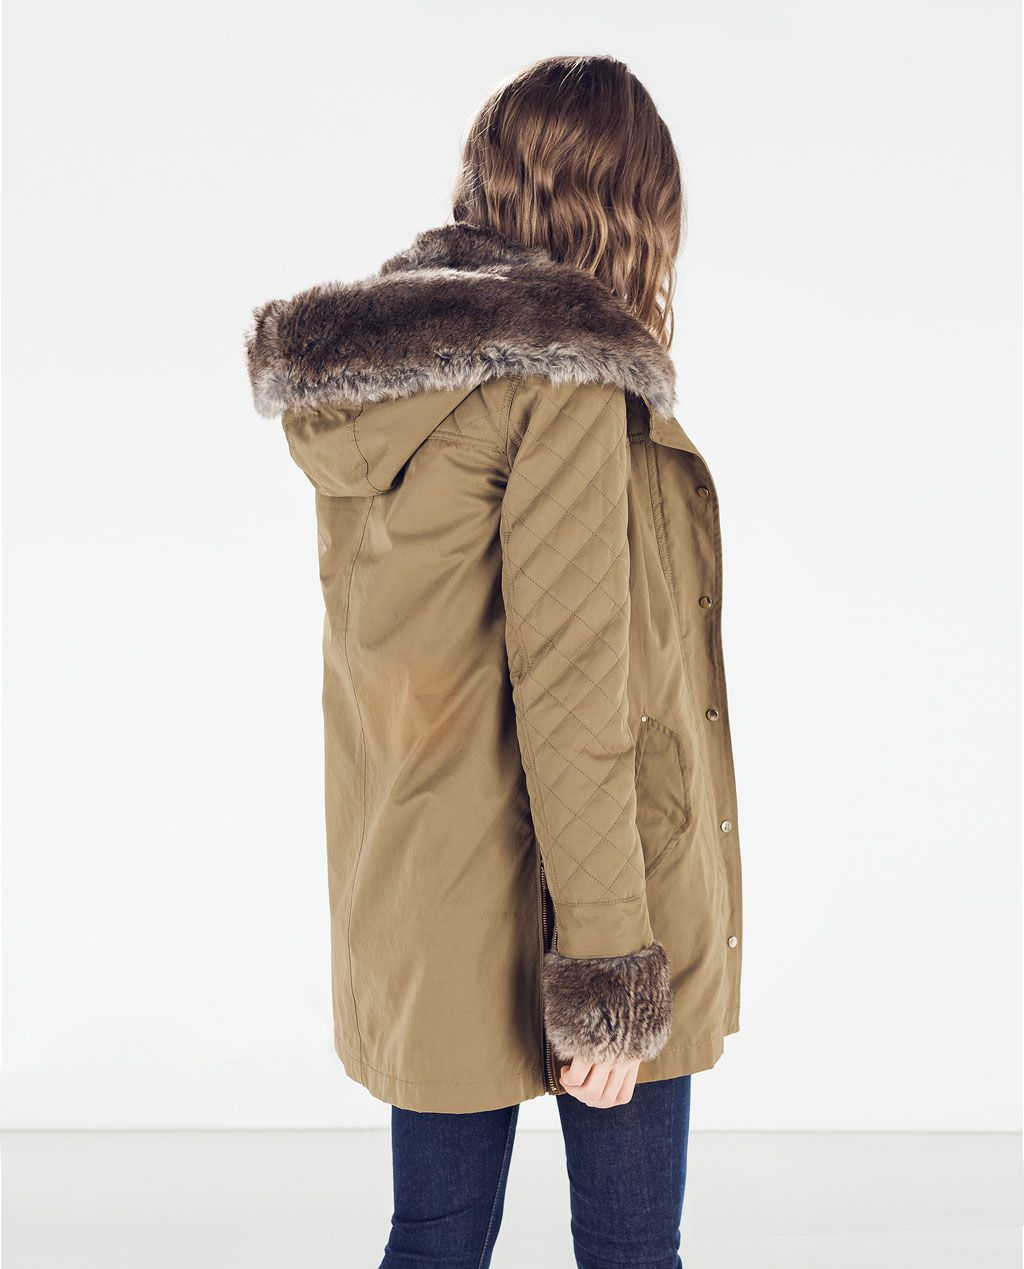 Parka Pinterest Woman With Wish List Hood Chaquetones Zara AYpFq5wn5